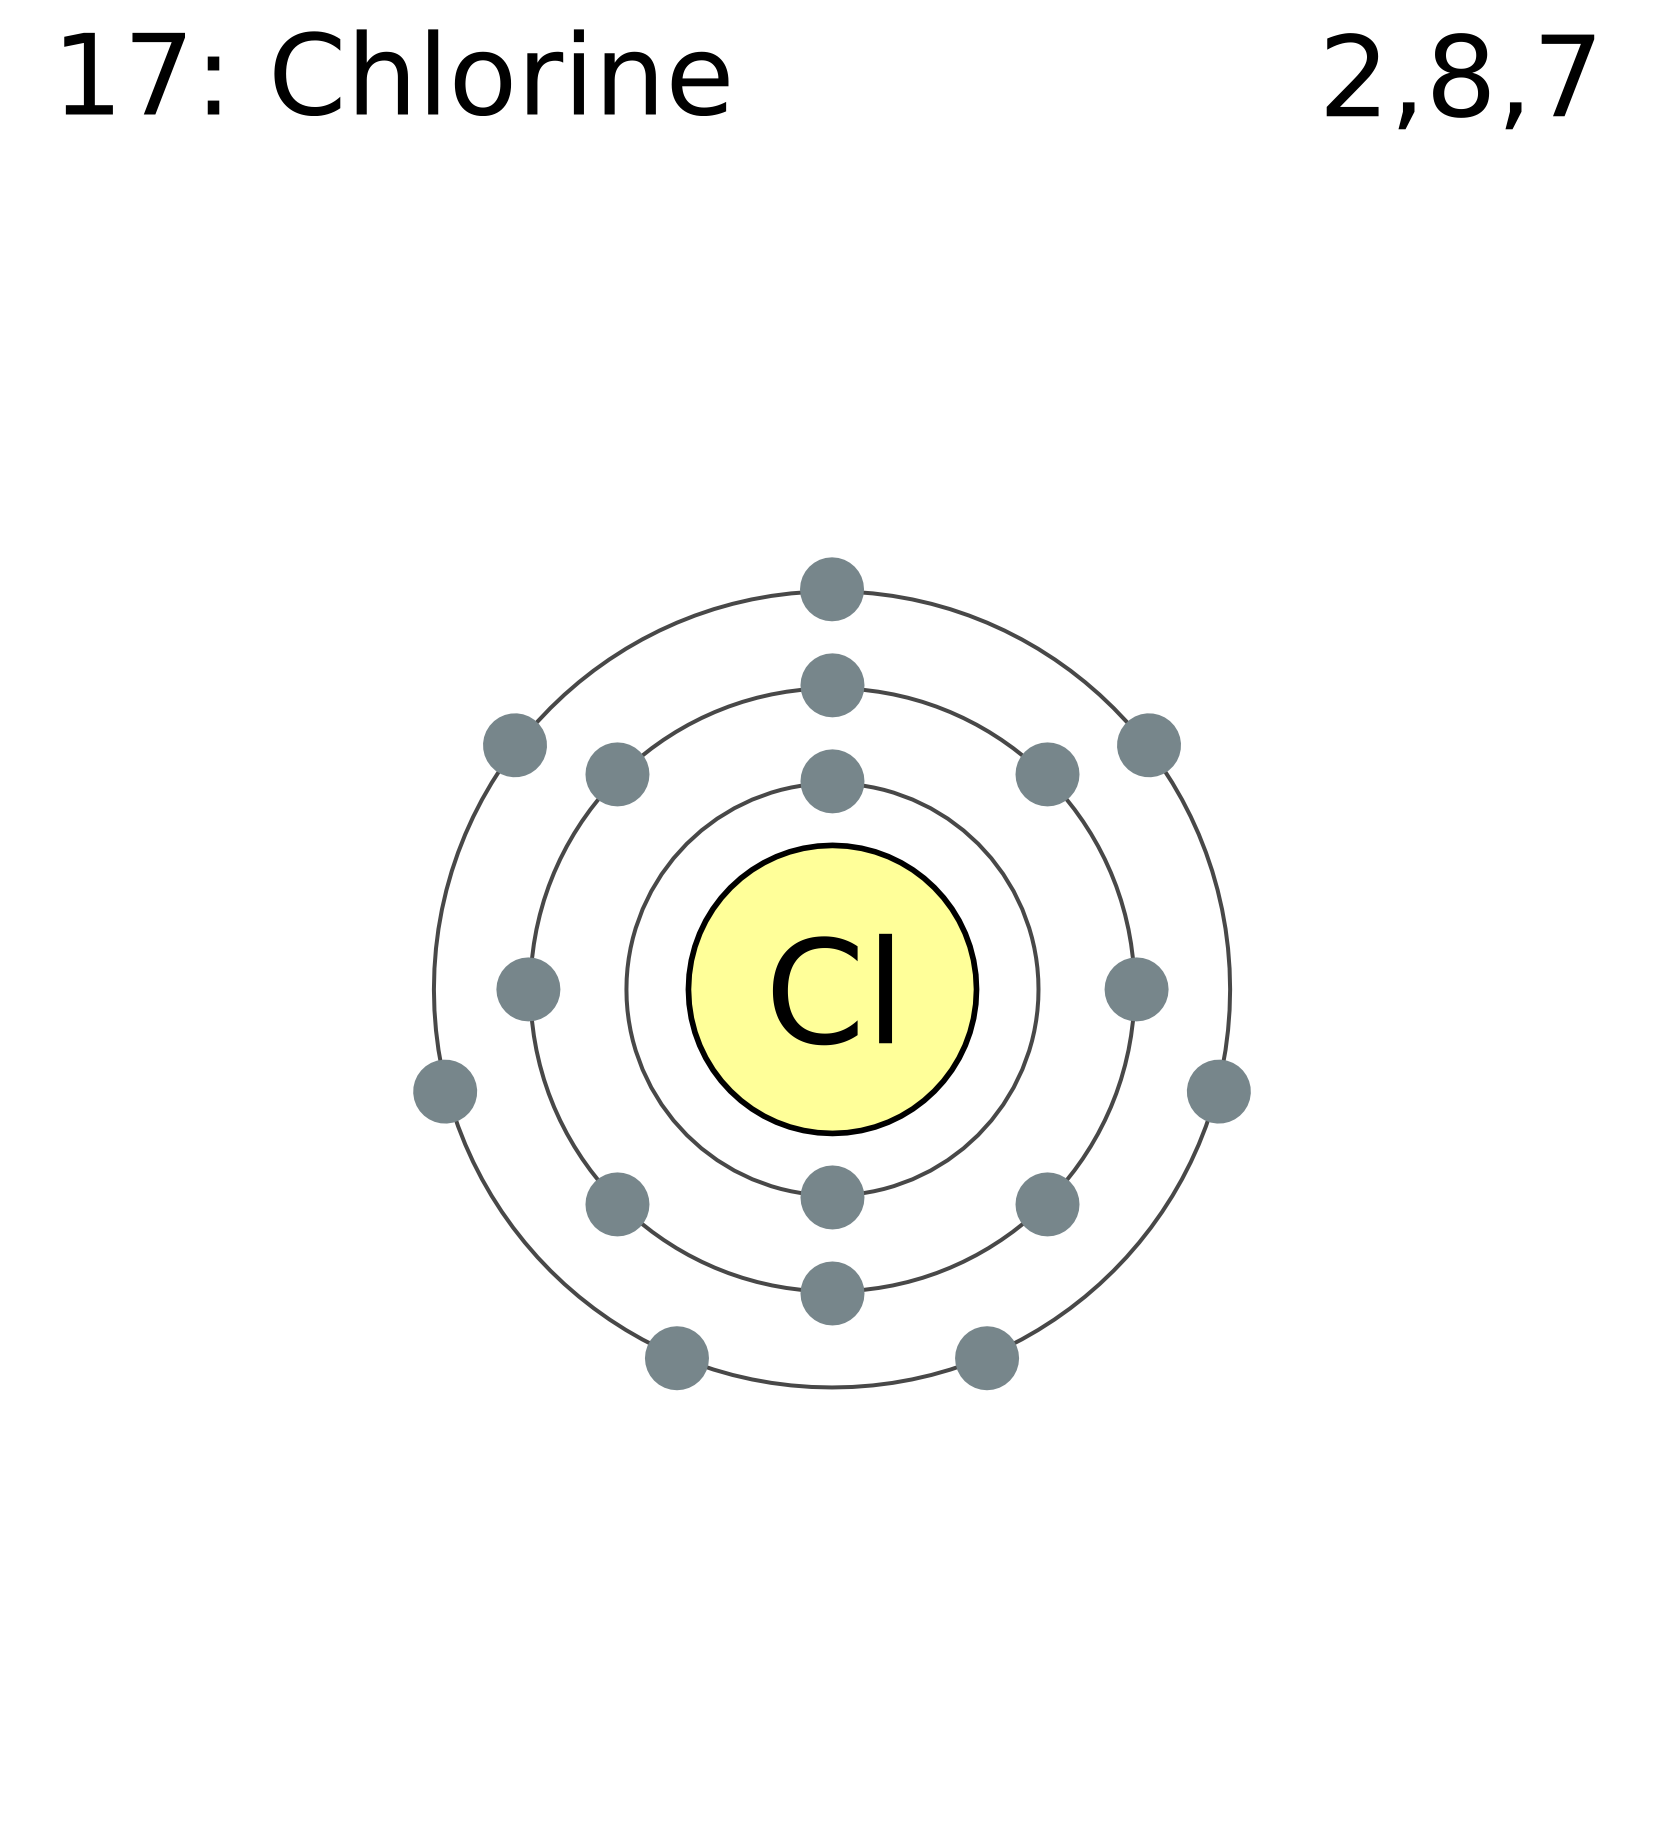 File:Electron shell 017 chlorine.png - Wikimedia Commons